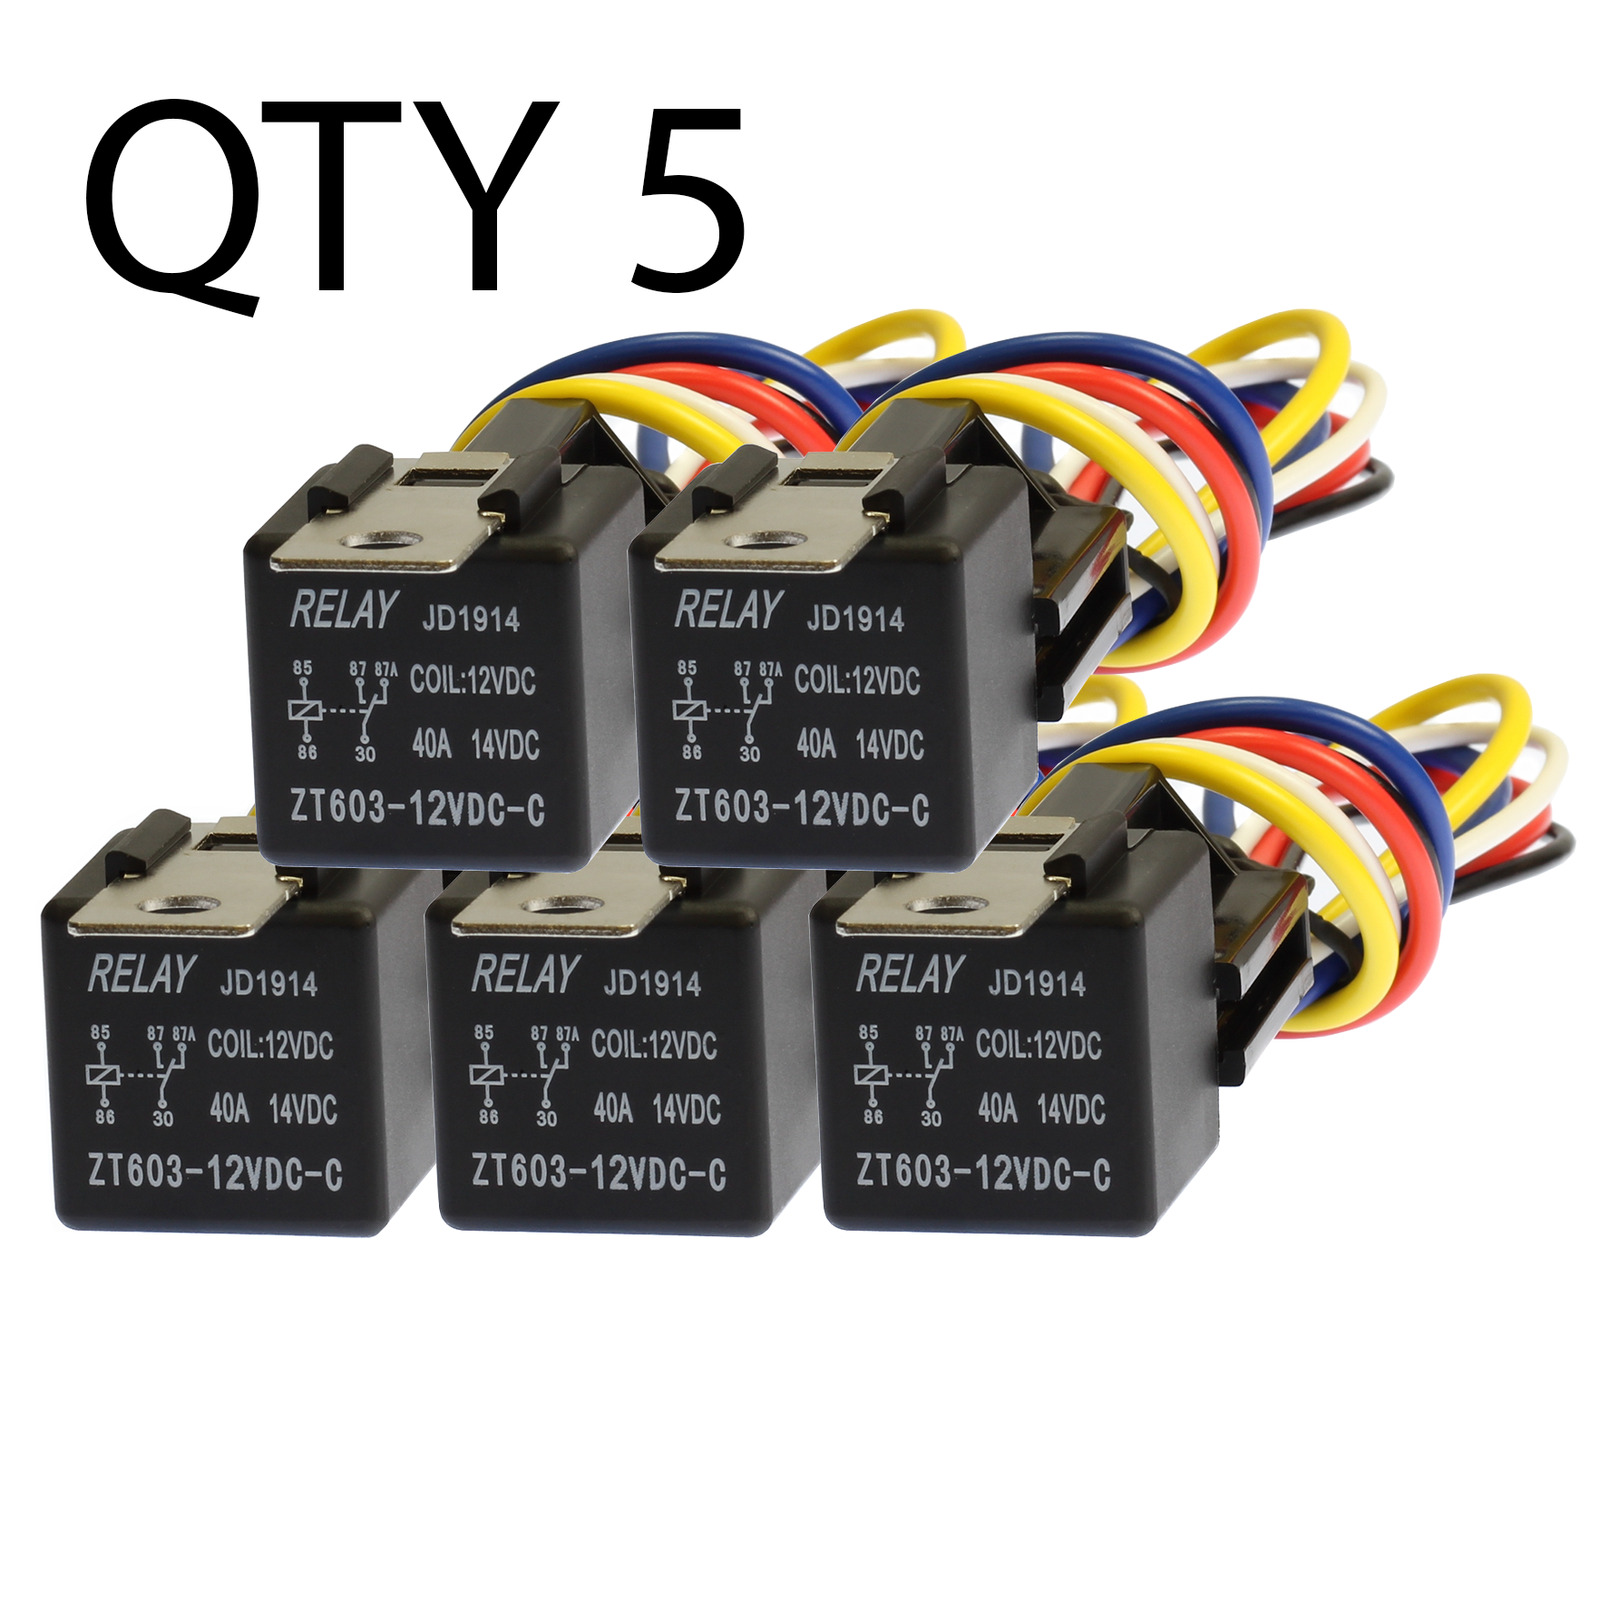 5 Pack 30 40 Amp Relay Wiring Harness Spdt 12 Volt Bosch Style S 1 Of 9only 3 Available